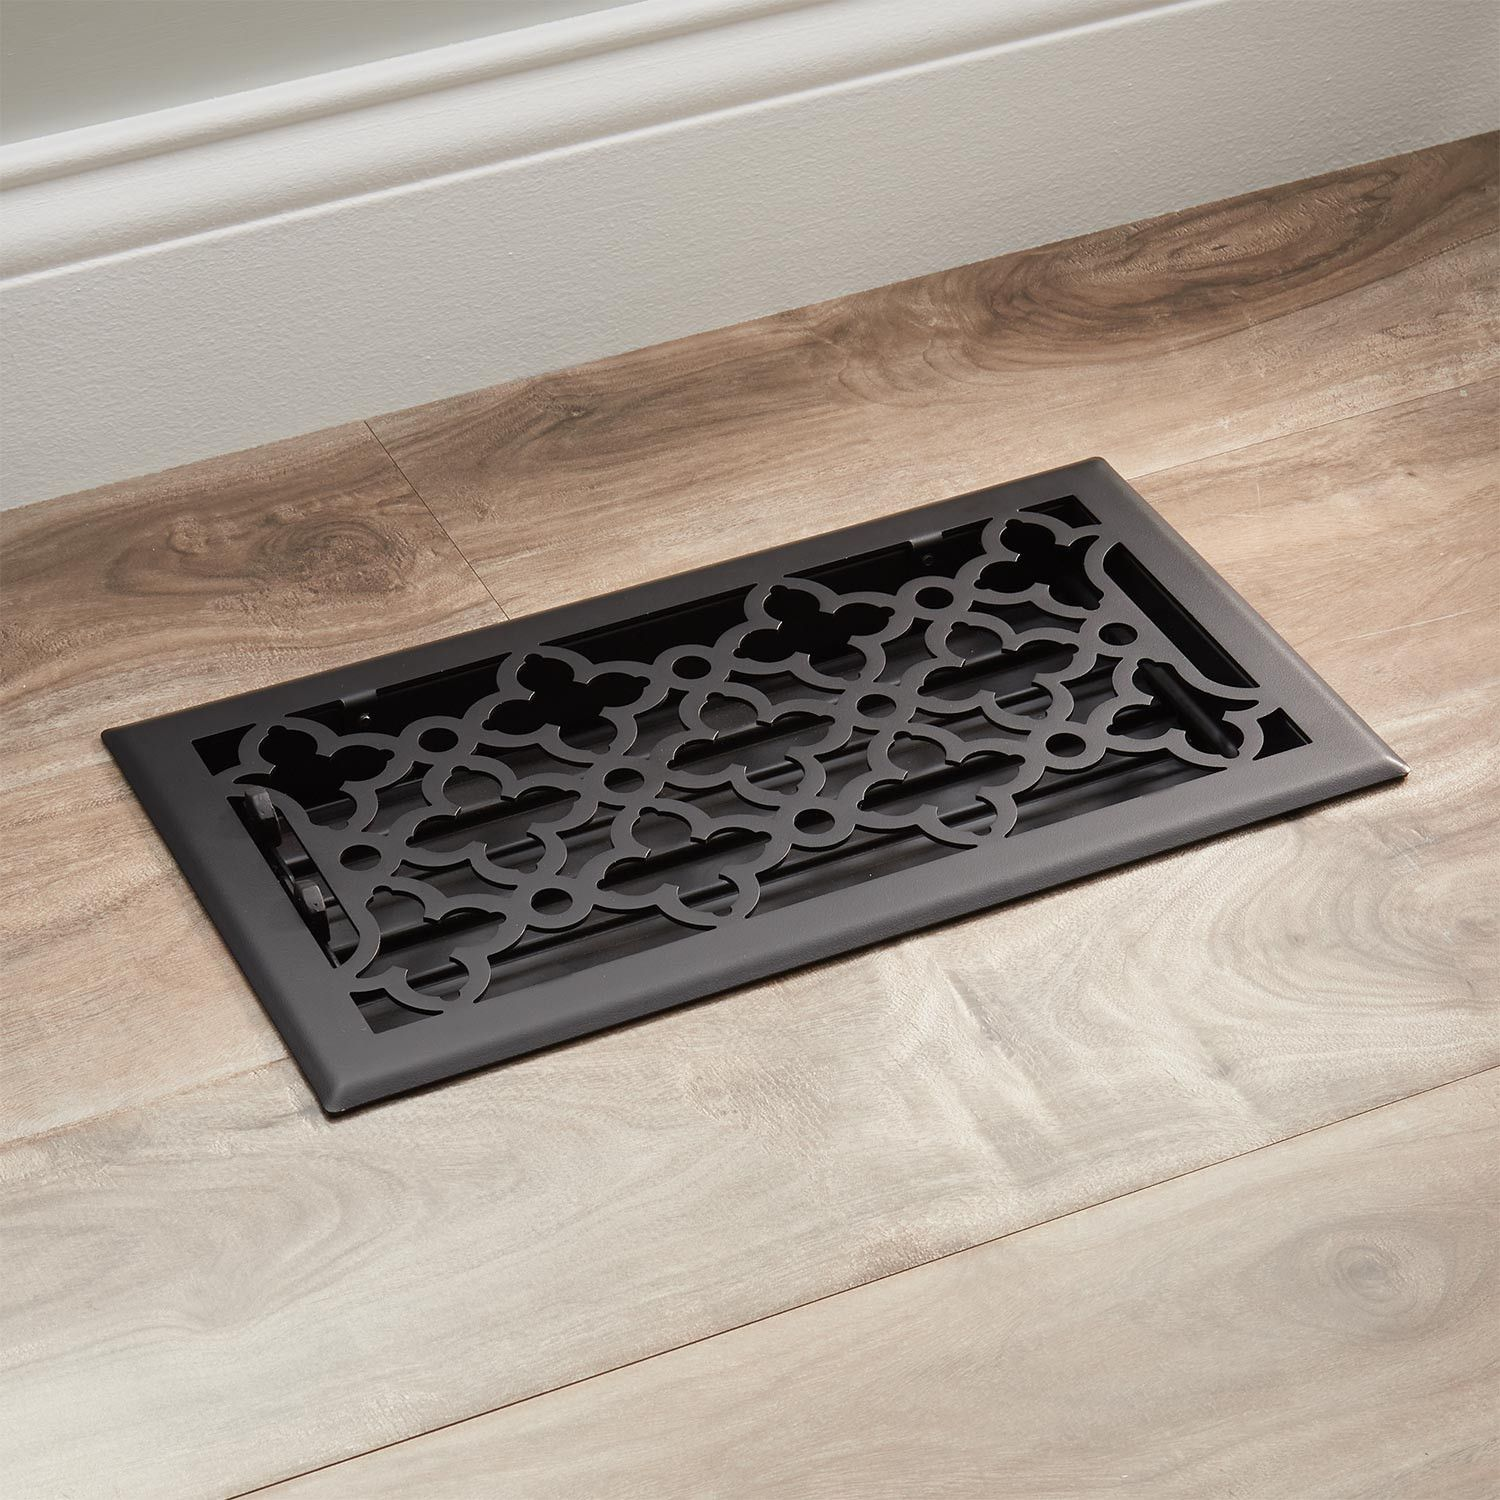 Signature Hardware Ballas Steel Floor Register 4x14 27 Floor Registers Decorative Vent Cover Flooring